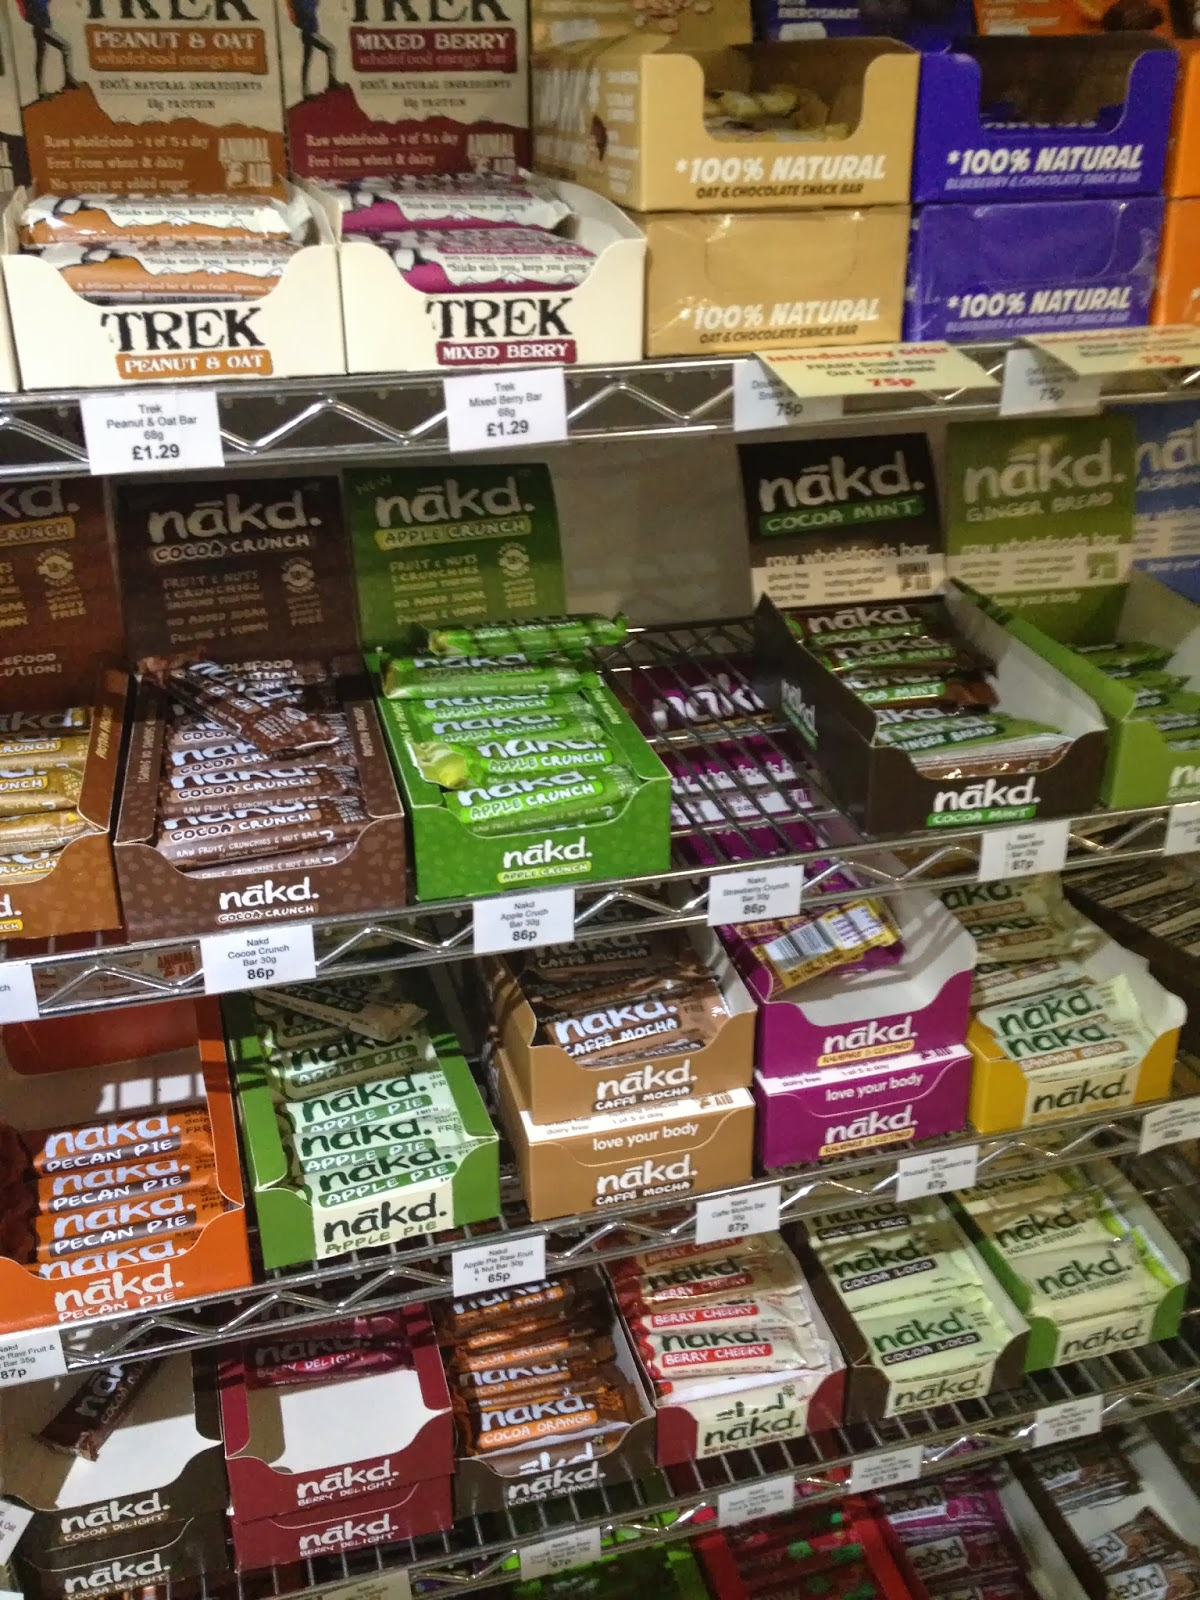 vegan vox the ordinary vegan nakd bars raw vegan